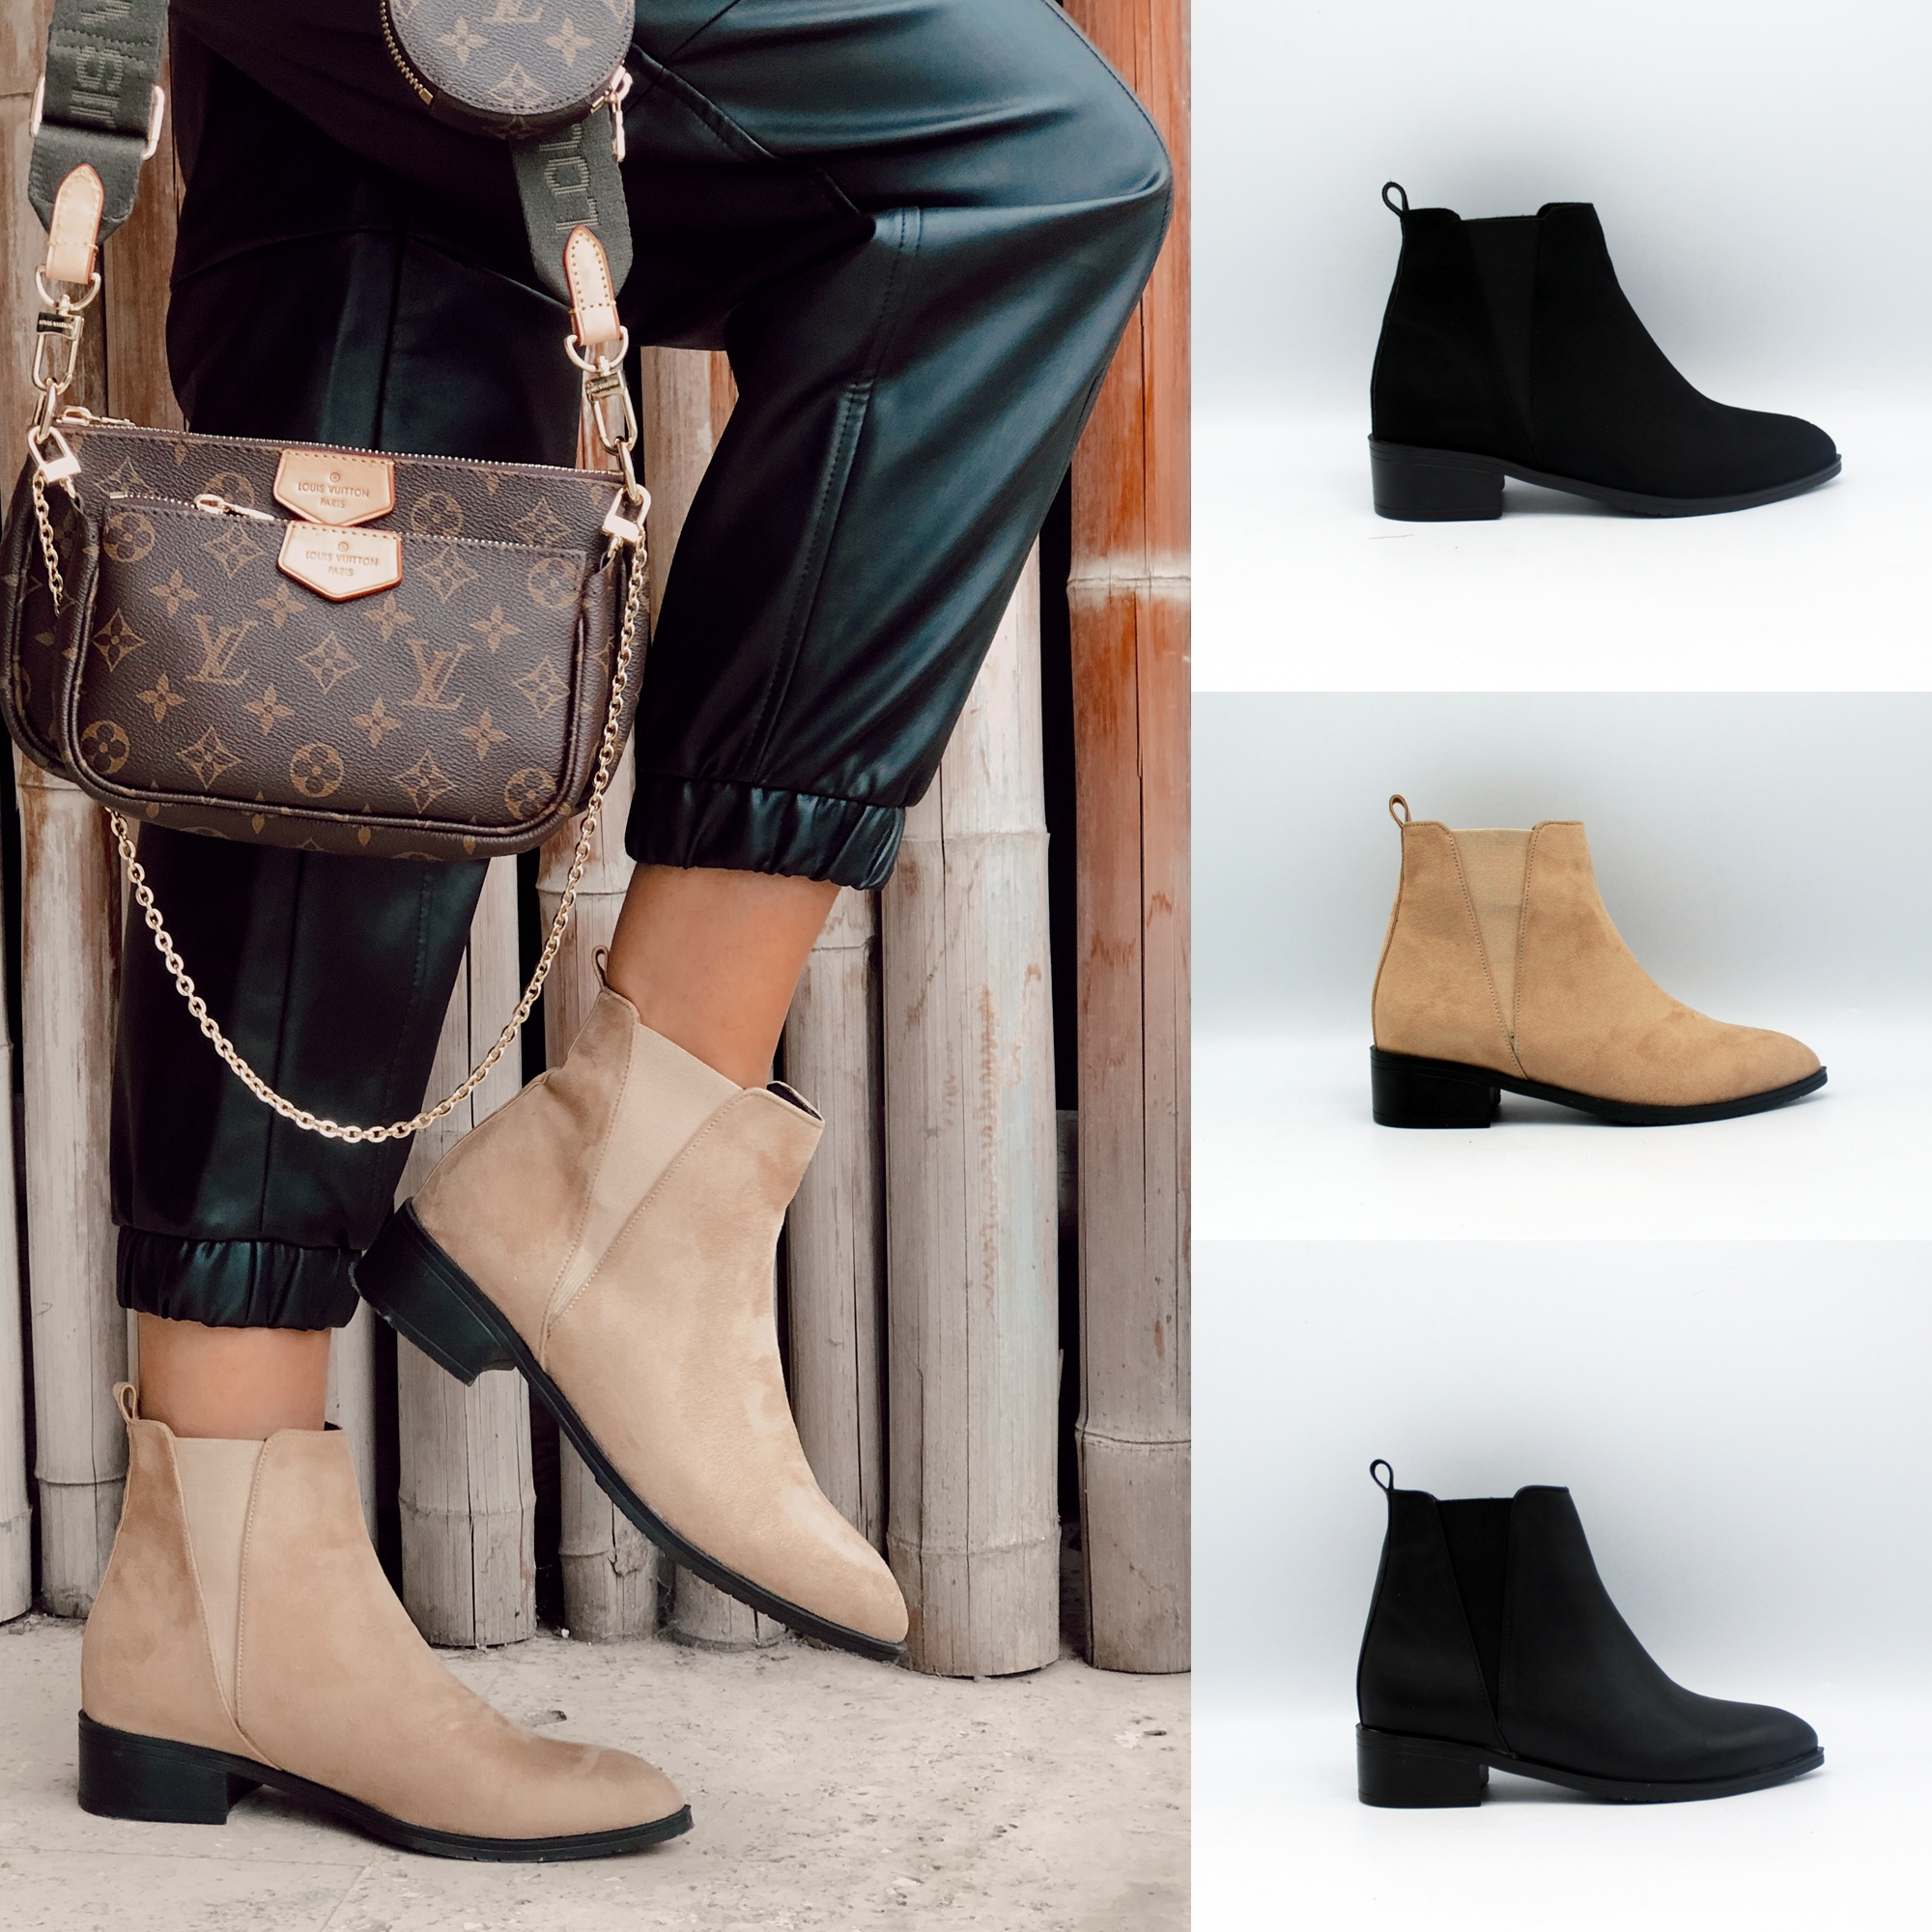 Low Heel Women Stylish Boots Footwear